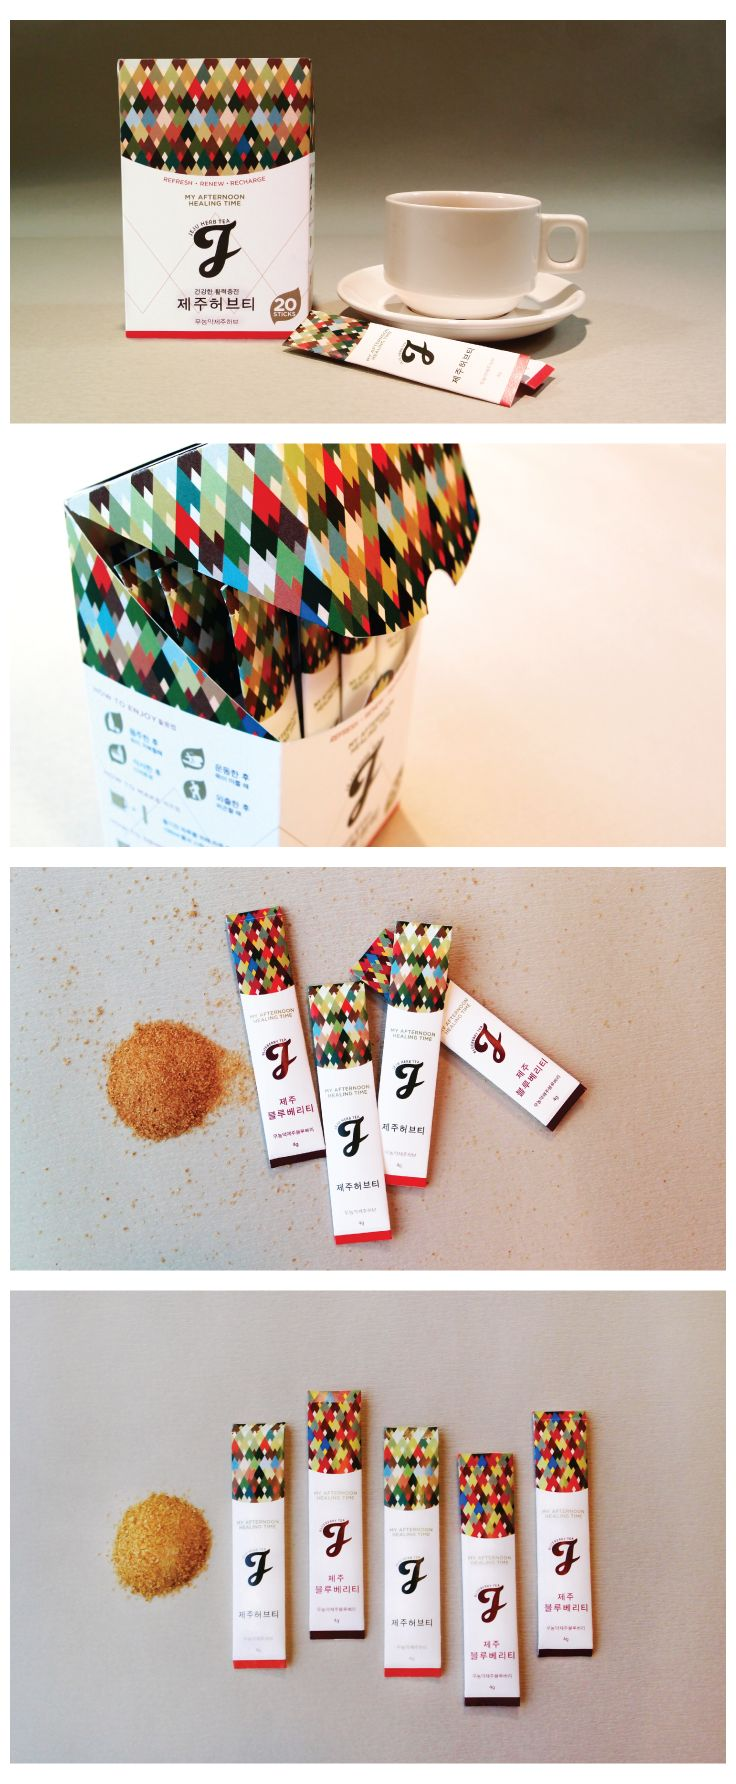 Our brand renewal project, JEJU HERB TEA, from design strategy to package design.